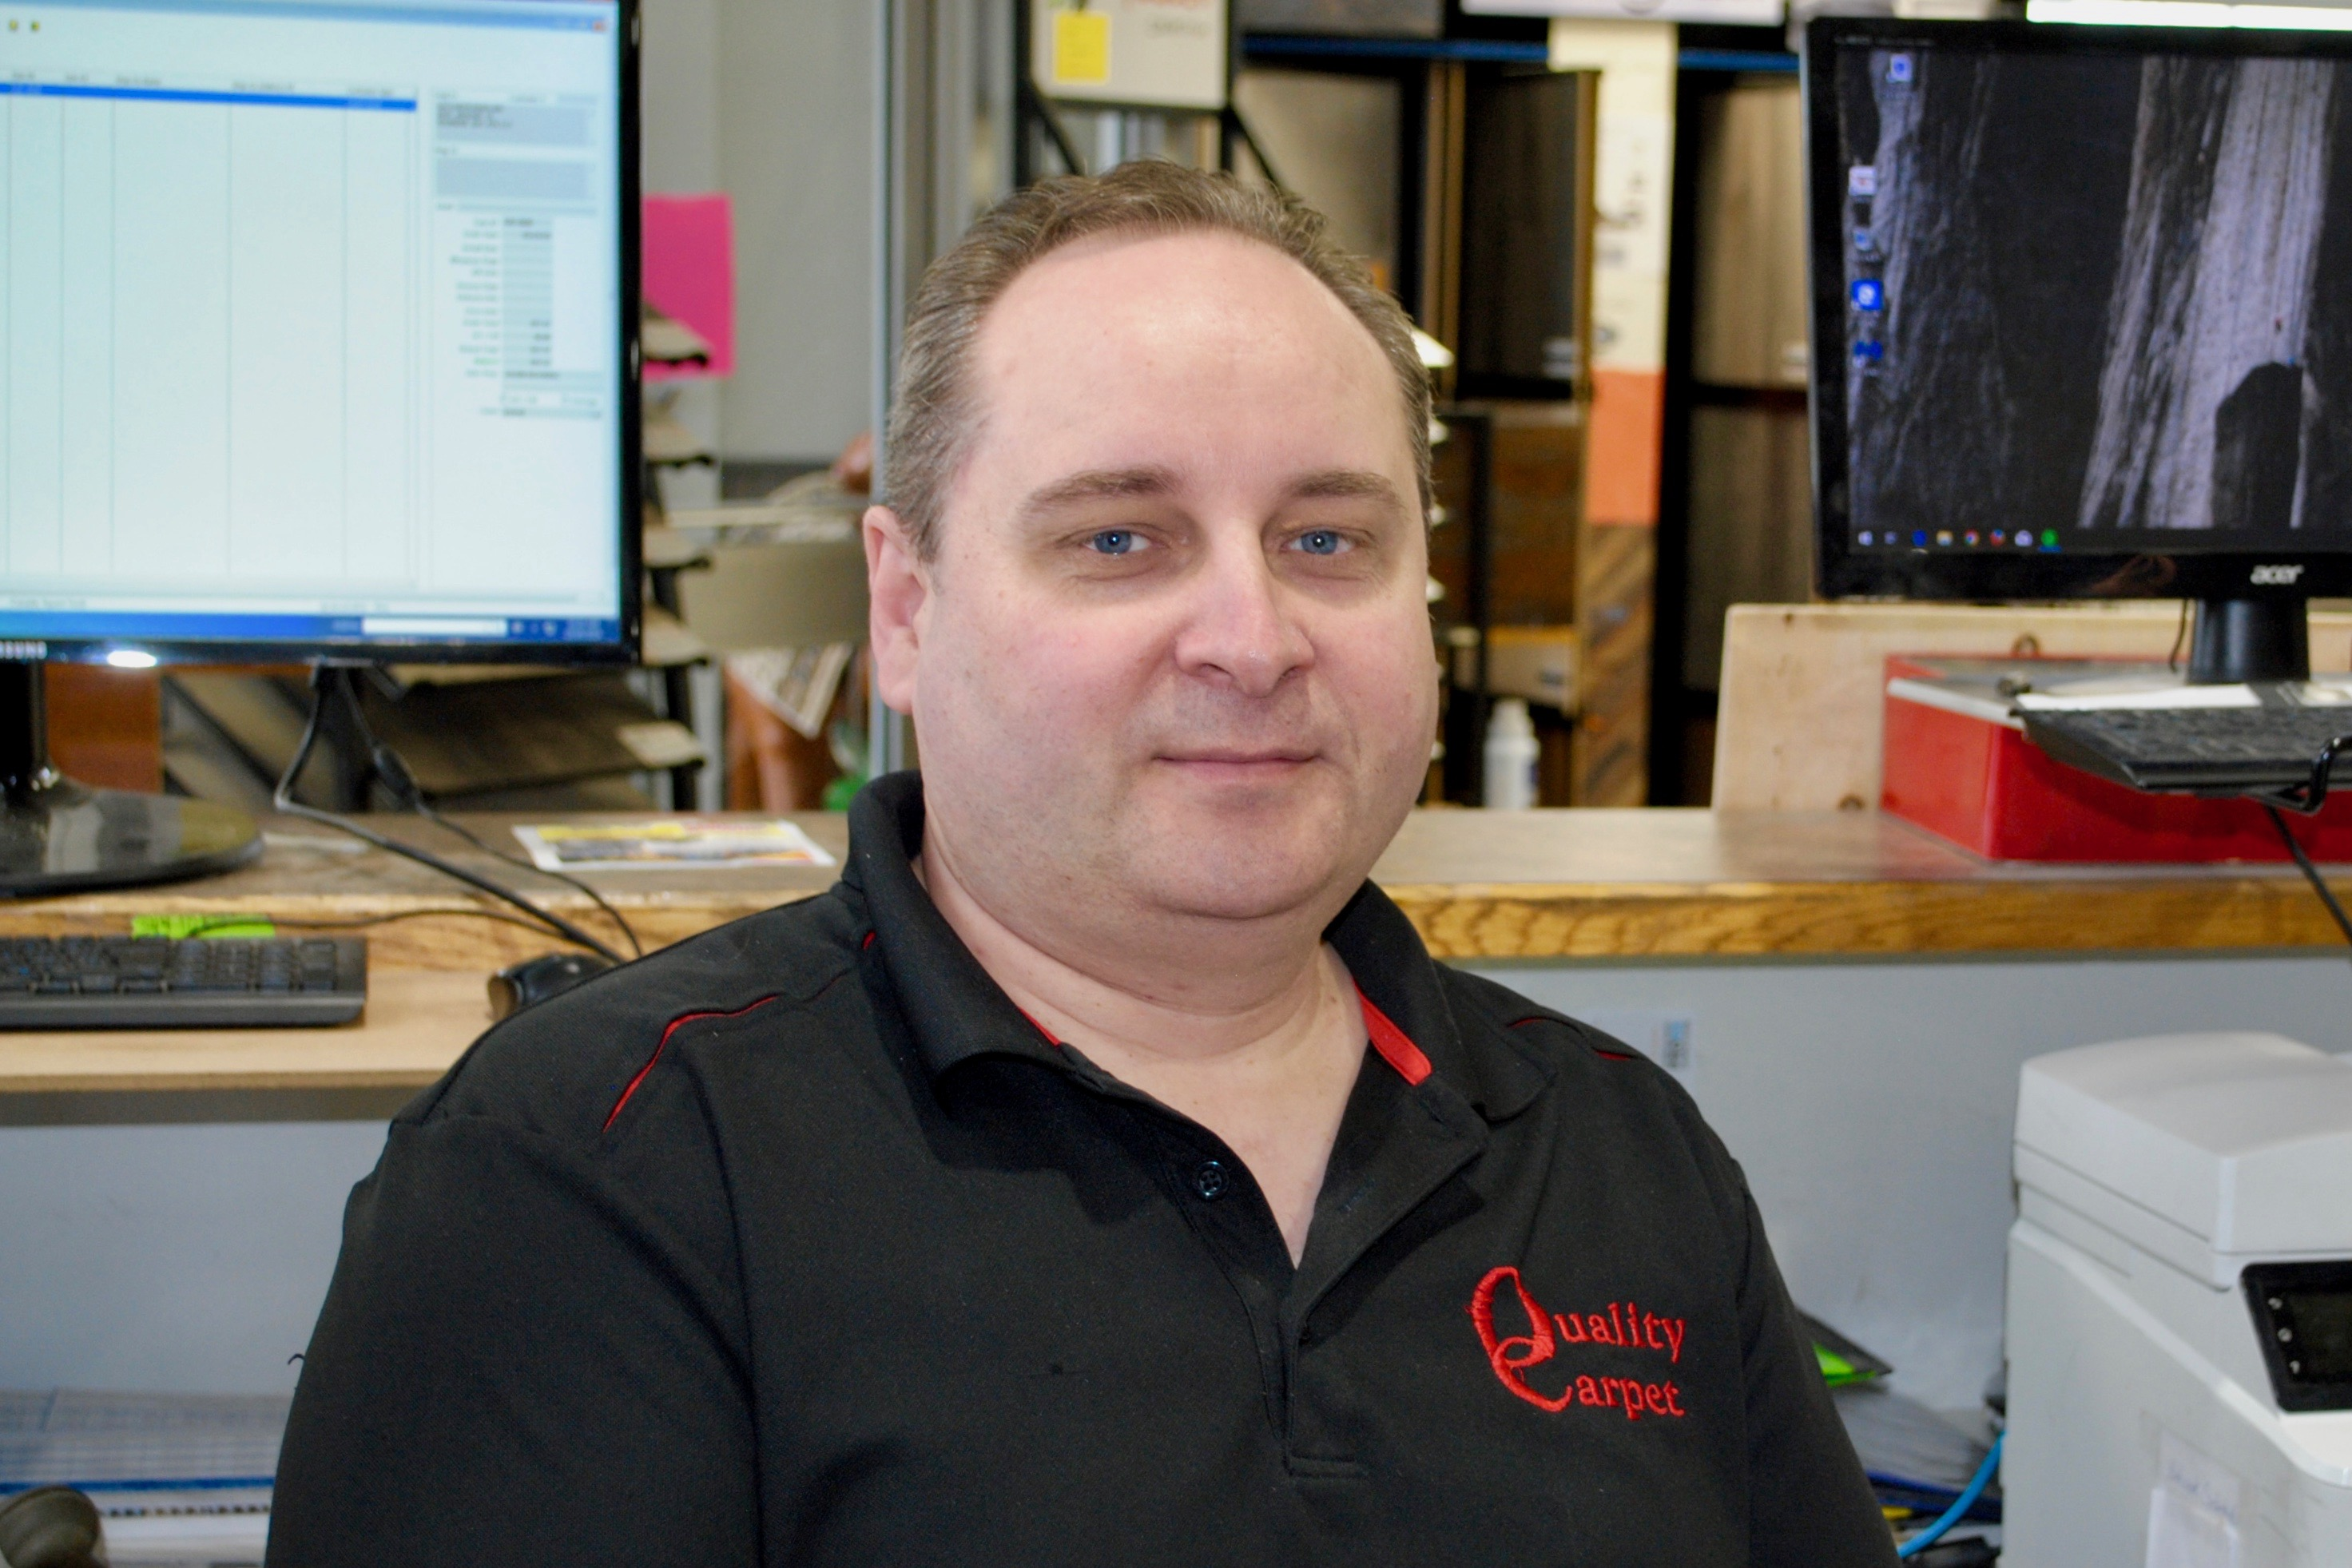 Jamie, Quality Carpet Sales Rep at Quality Carpet in Thunder Bay, Ontario